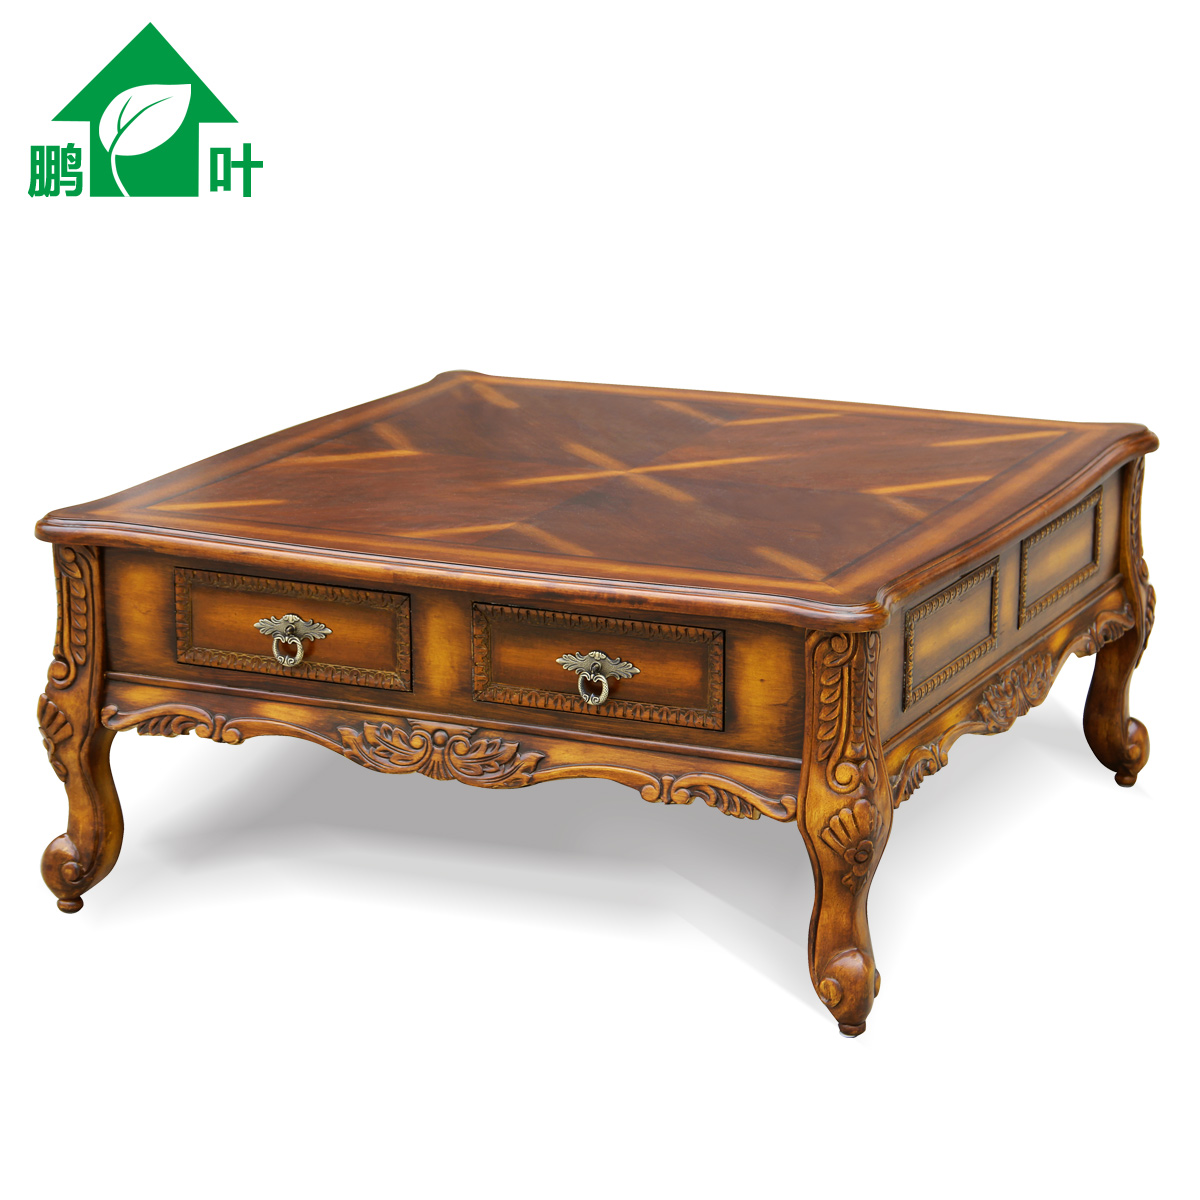 Picture of: Pengye Furniture American Country Tea Table Large Square Coffee Table European Solid Wood Tea Table Four Drawers Living Room Coffee Table